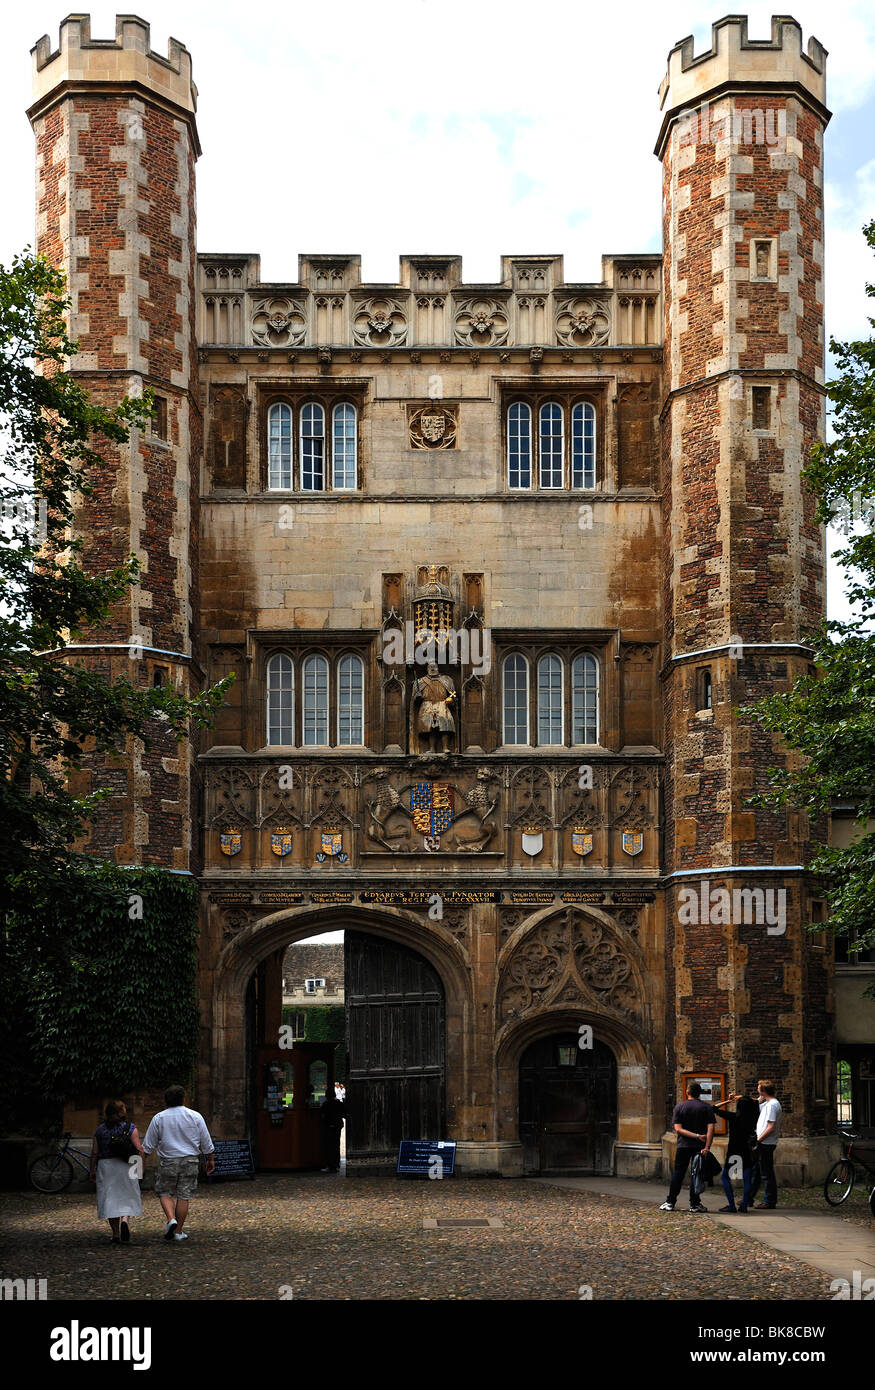 Entrance gate to Trinity College, founded in 1546 by Henry VIII, Trinity Street, Cambridge, Cambridgeshire, England, - Stock Image